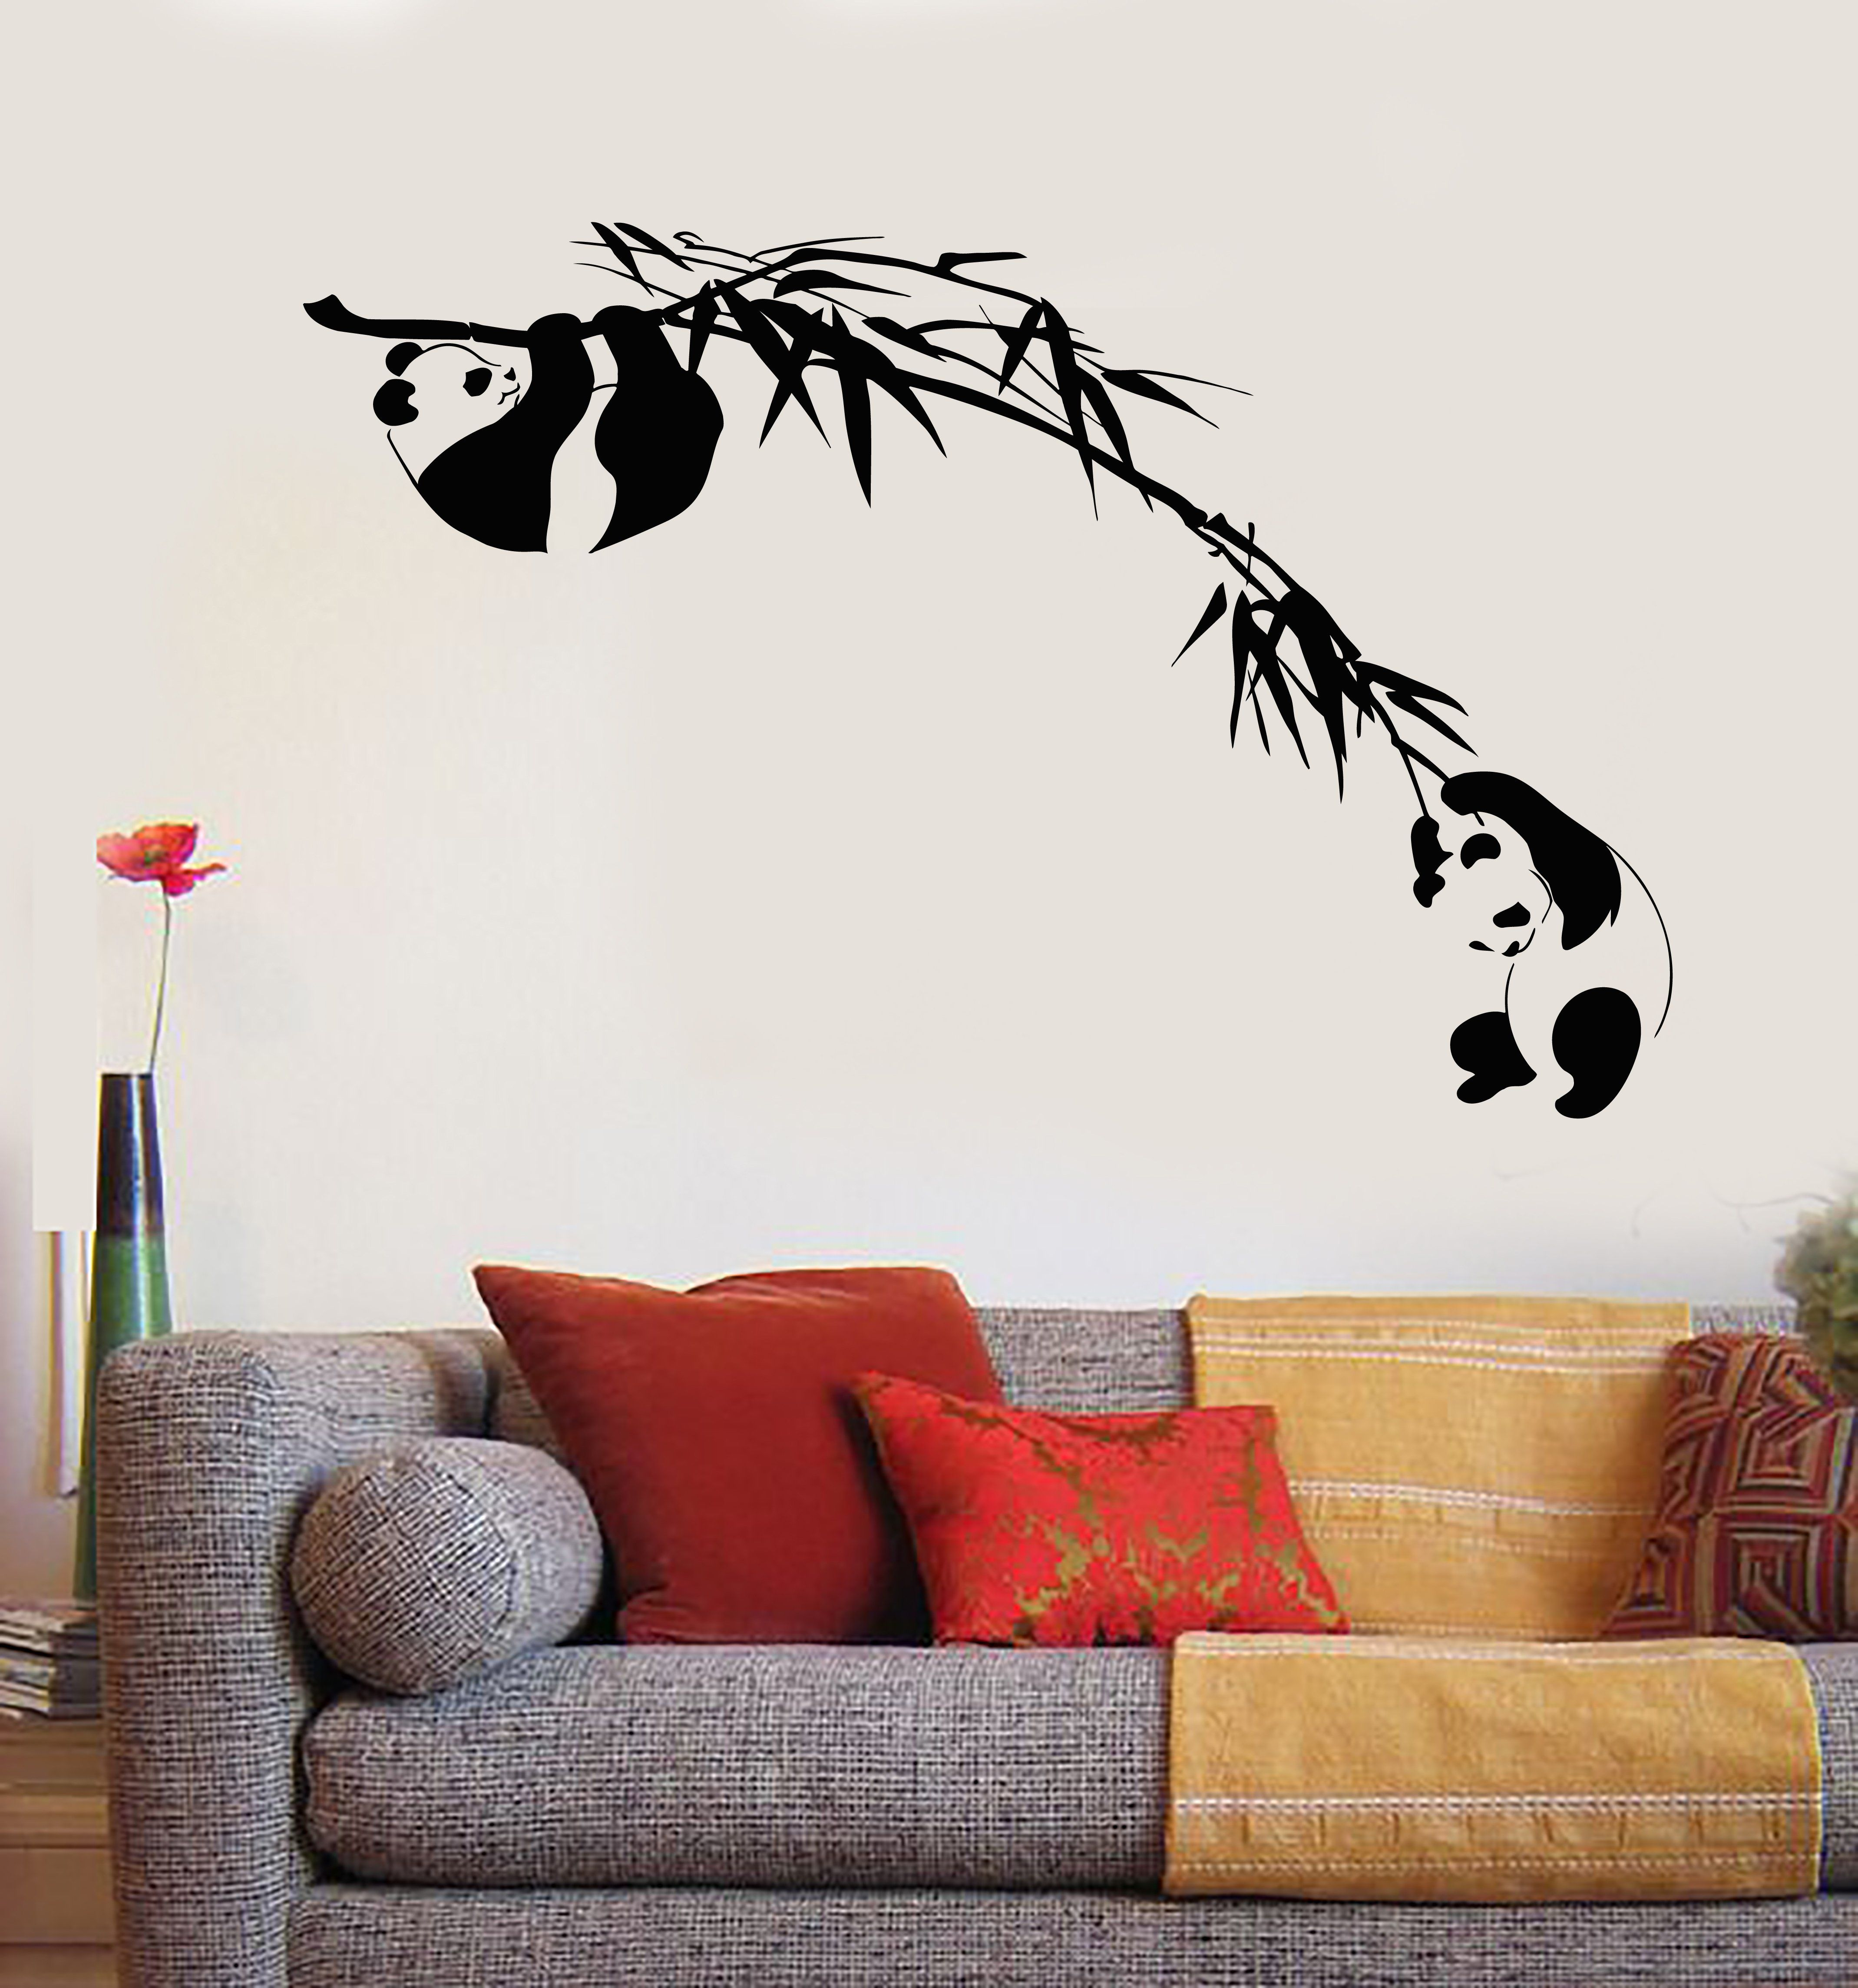 Vinyl Wall Decal Branch Bamboo Tree Panda Asian Animal